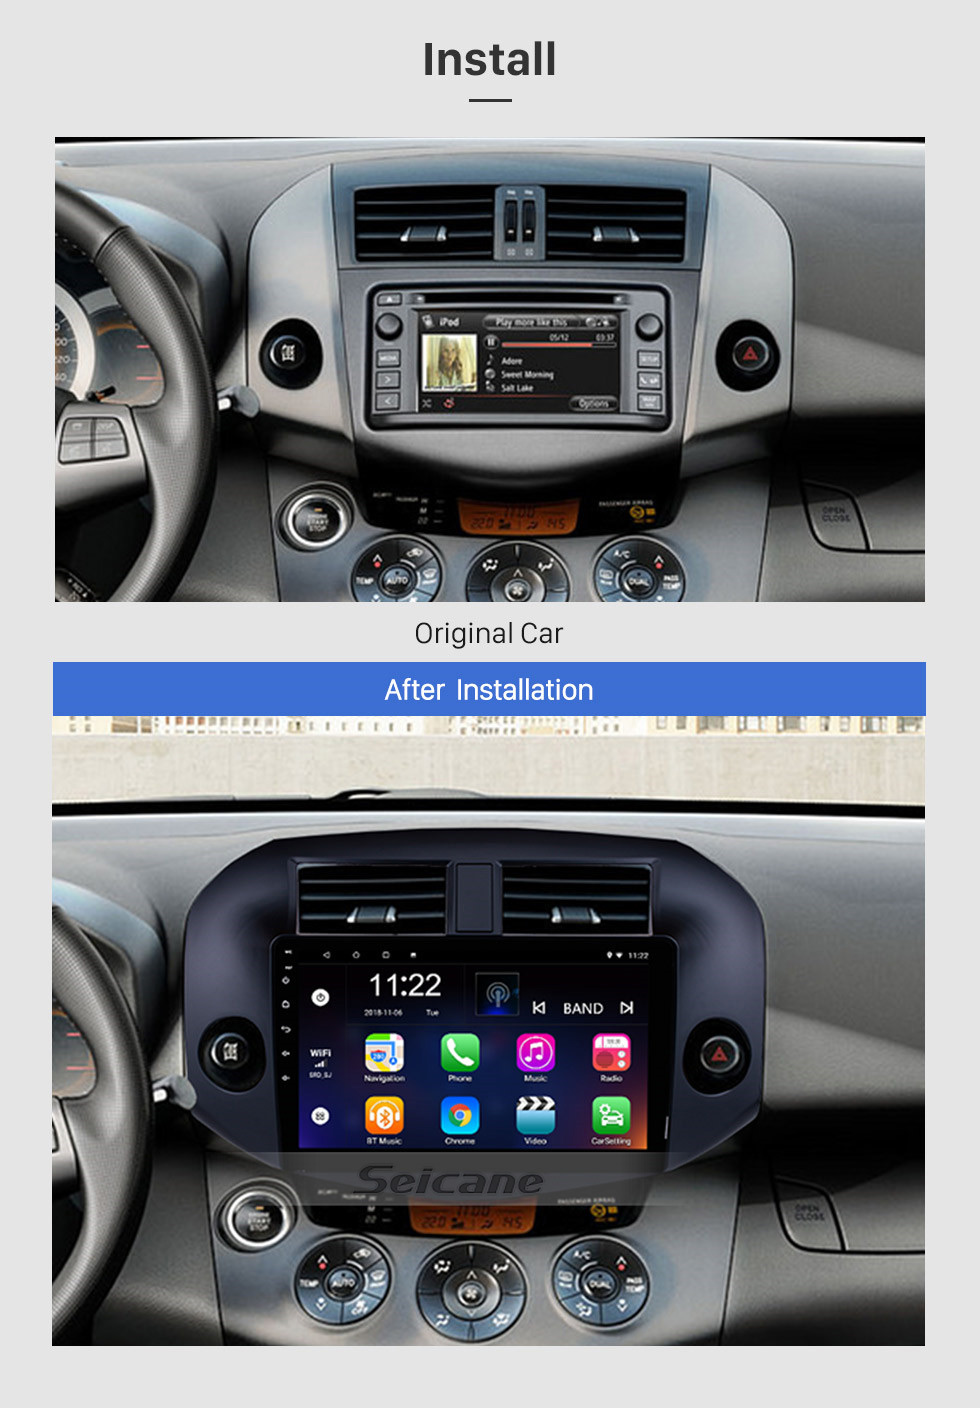 Seicane OEM Android 8.1 Radio for 2007-2011 Toyota RAV4 10.1 inch HD Touch Screen Bluetooth GPS Navigation USB WIFI Music SWC OBD DVR Rearview Camera TV